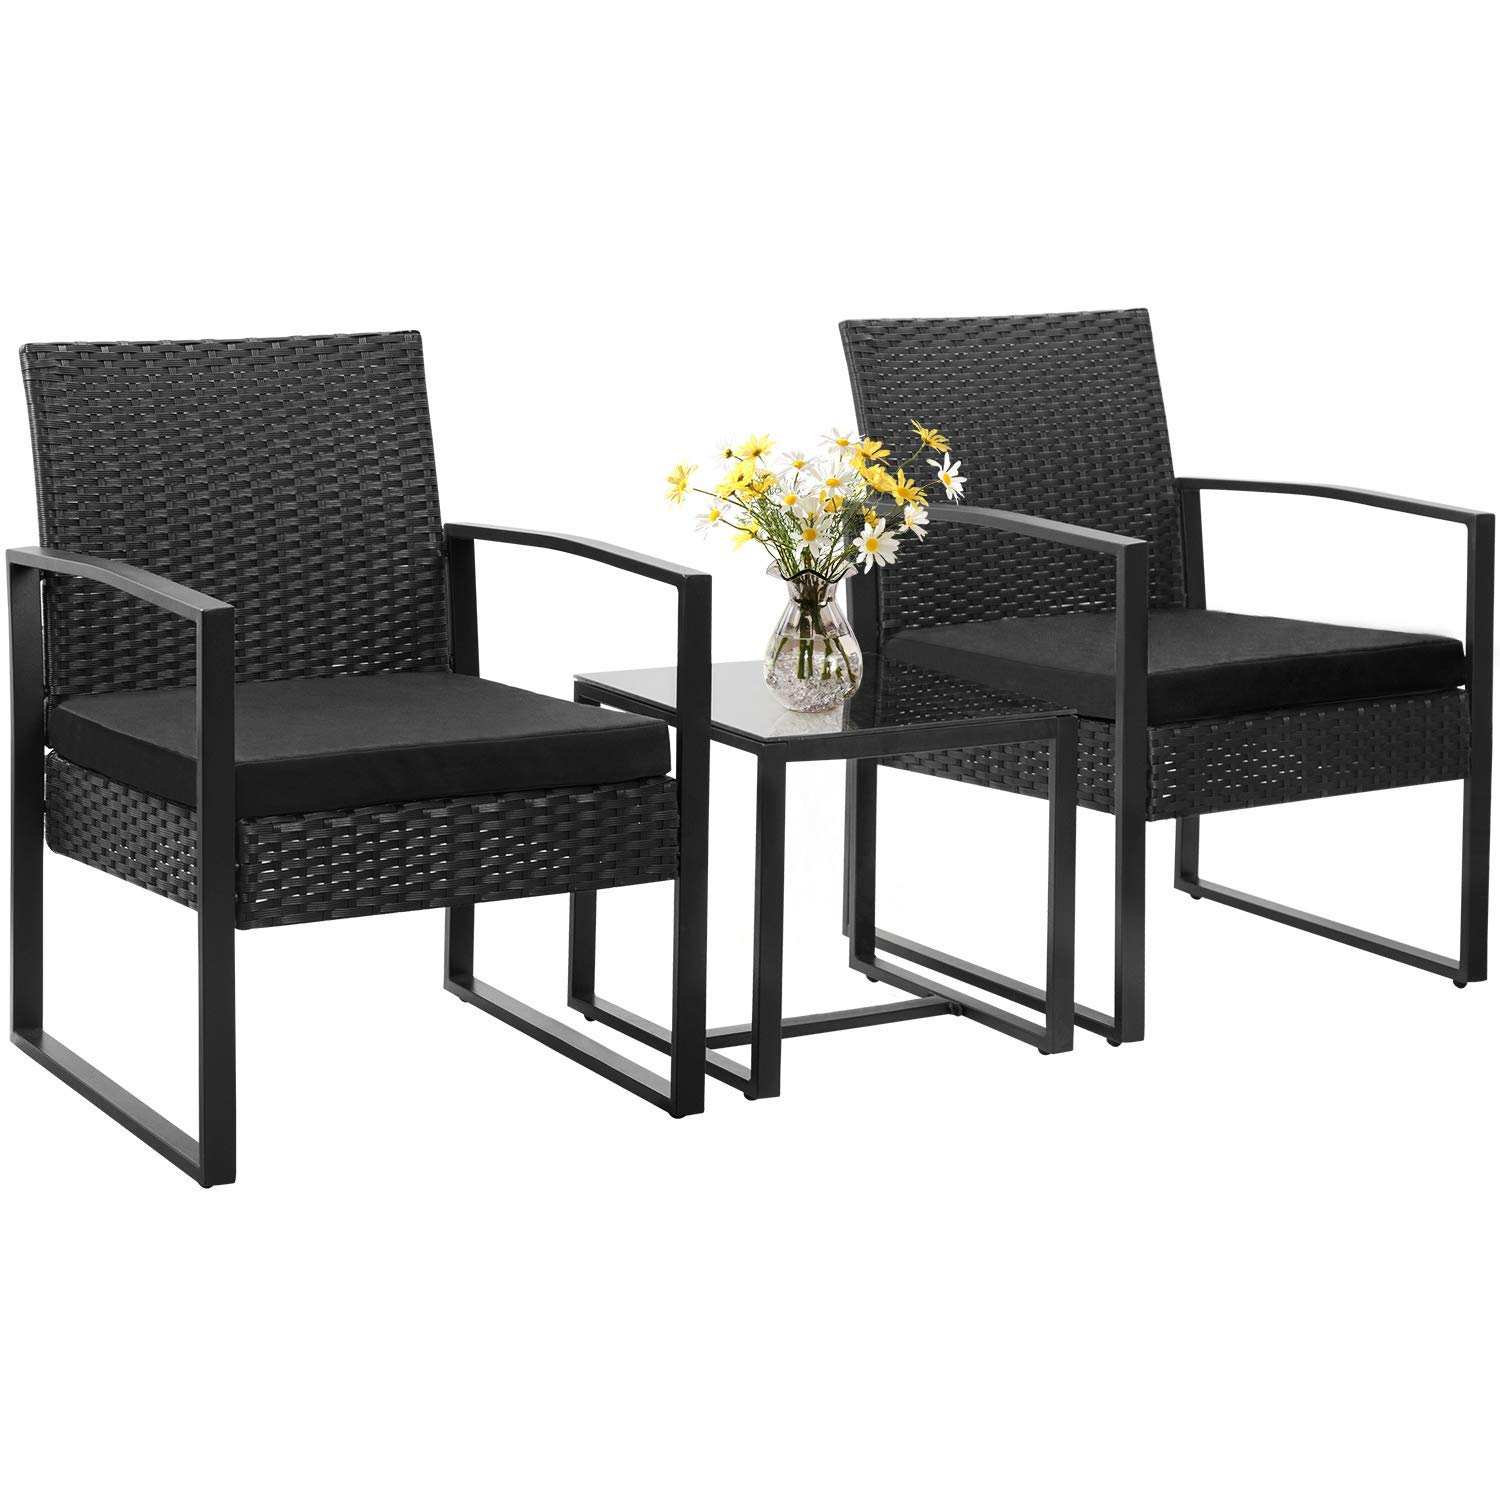 Homall 3 Pieces Patio Sets Bistro Table Set Modern Indoor Outdoor Furniture Sets Patio Furniture Sets Cushioned PE Wicker Bistro Set Rattan Chair Conversation Sets Coffee Table (Black)